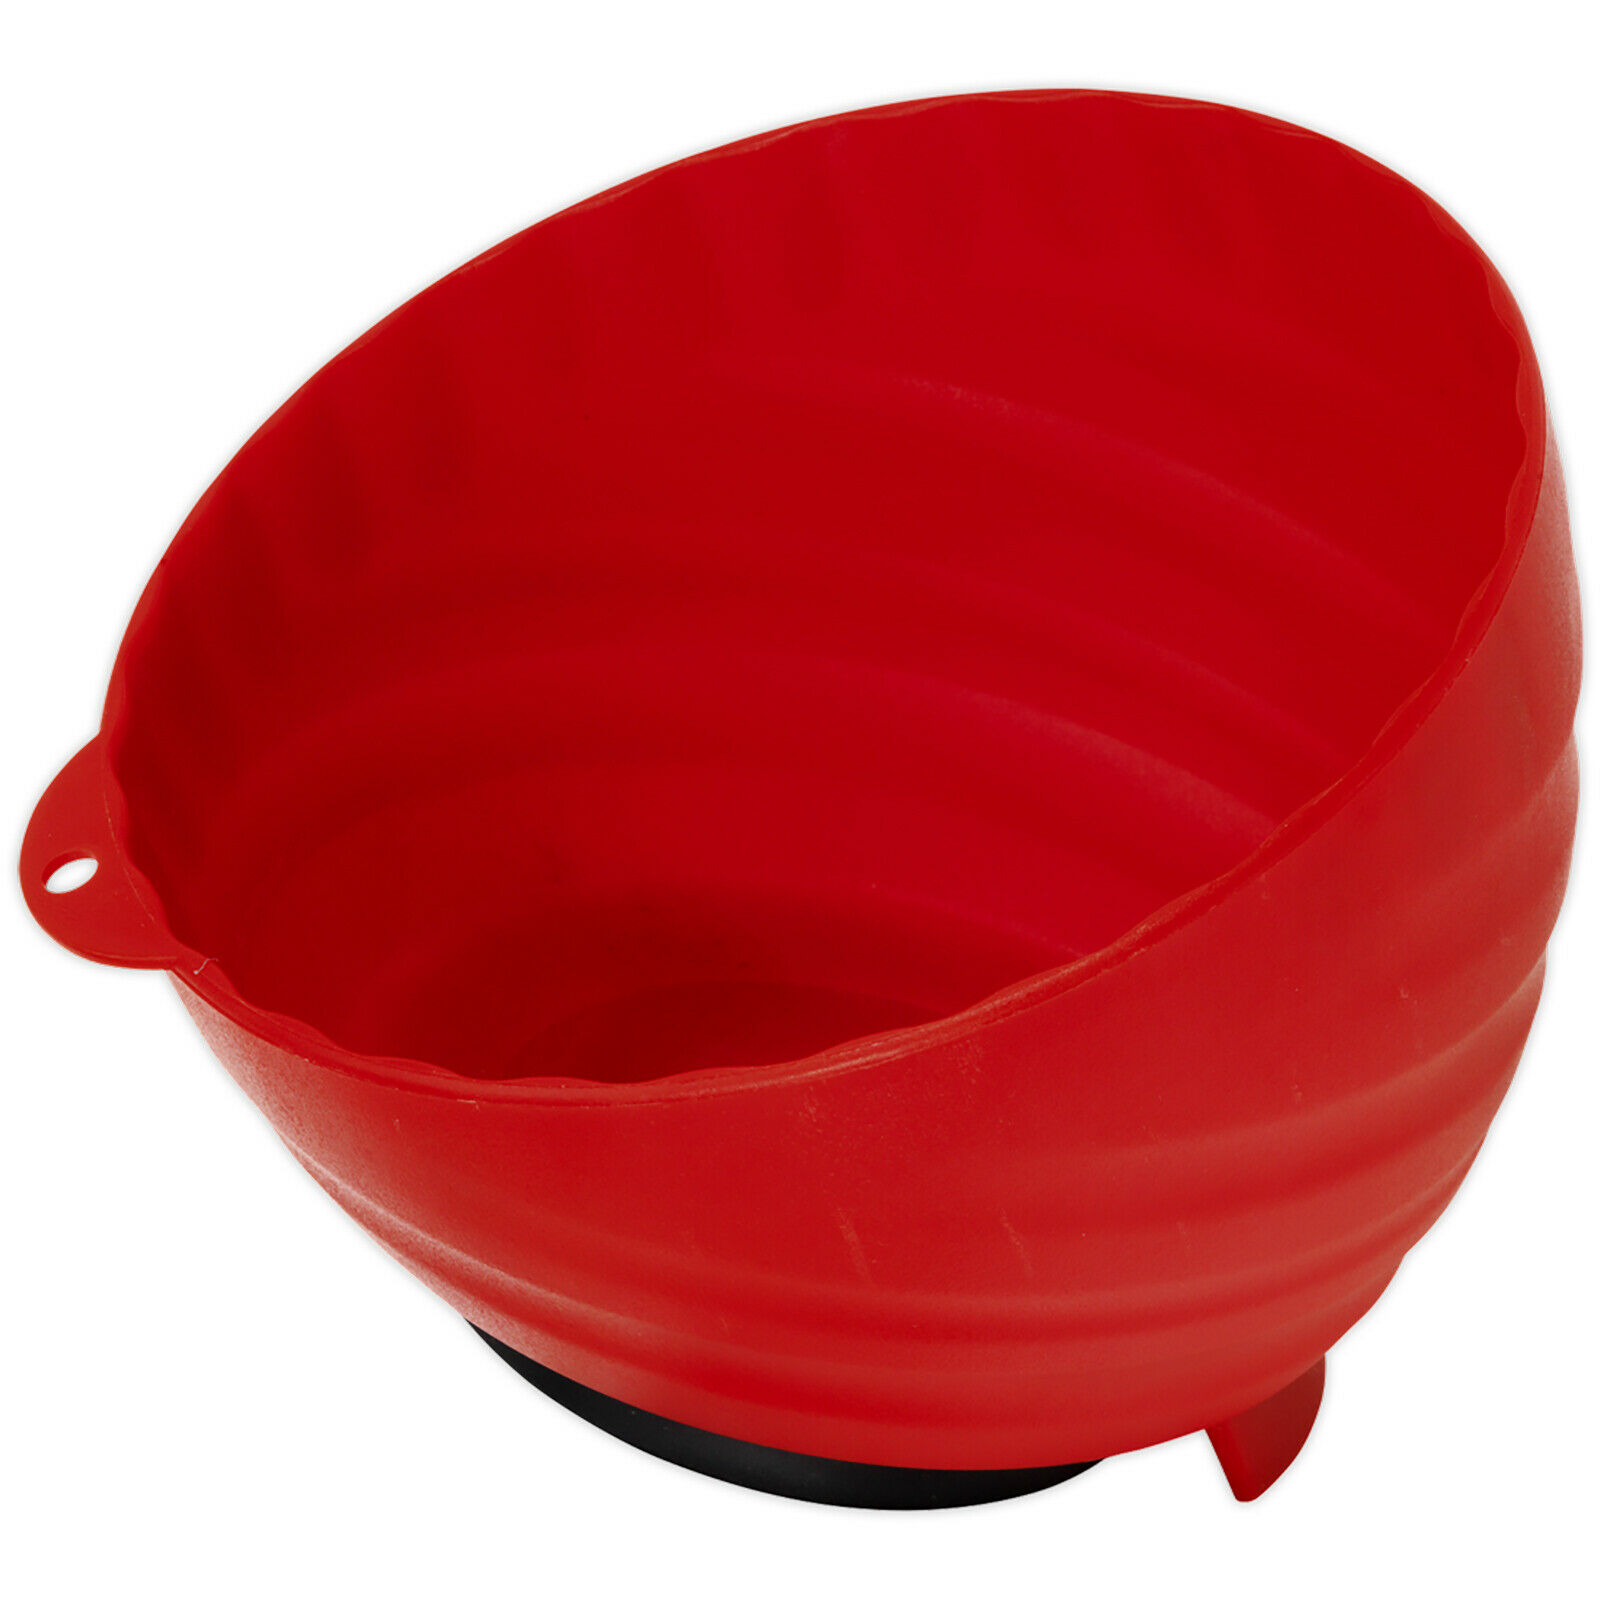 Sealey Magnetic Parts Tray Bowl Dish 150mm Non Marking Small Parts Storage Red